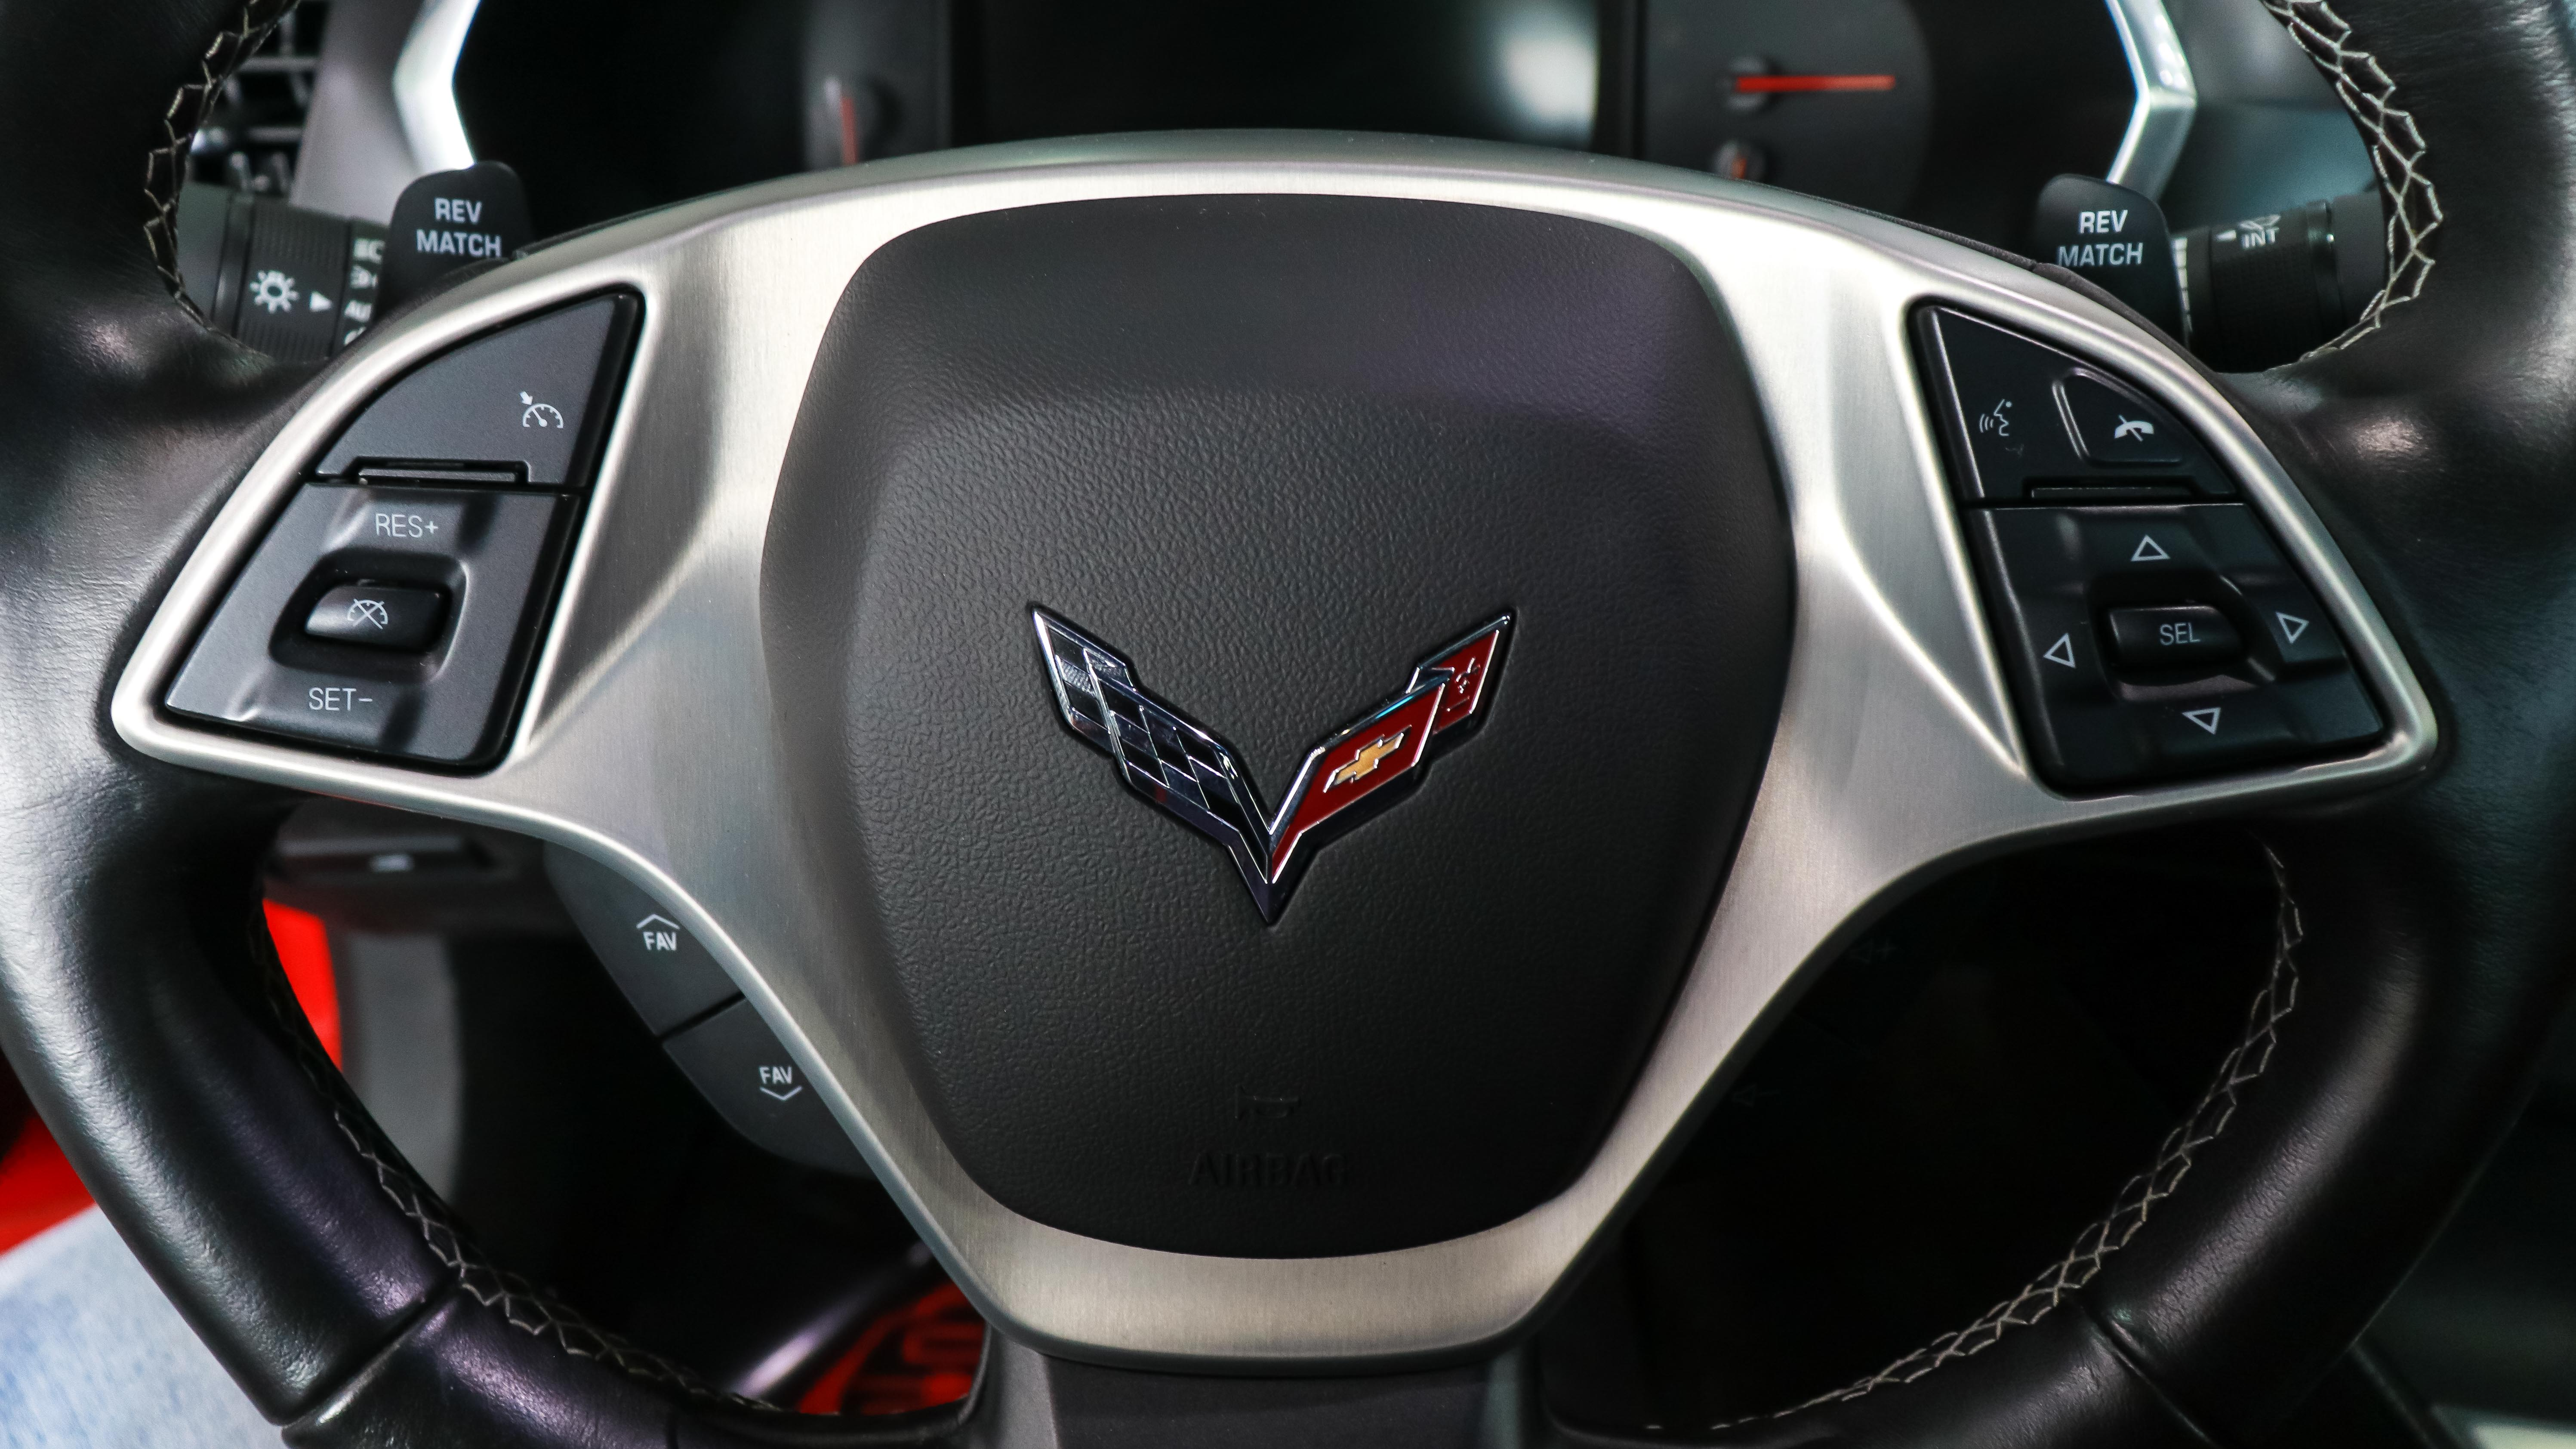 2019-Chevrolet-Corvette-Stingray-6.2-L-V8-Red-Red-import-11.jpg